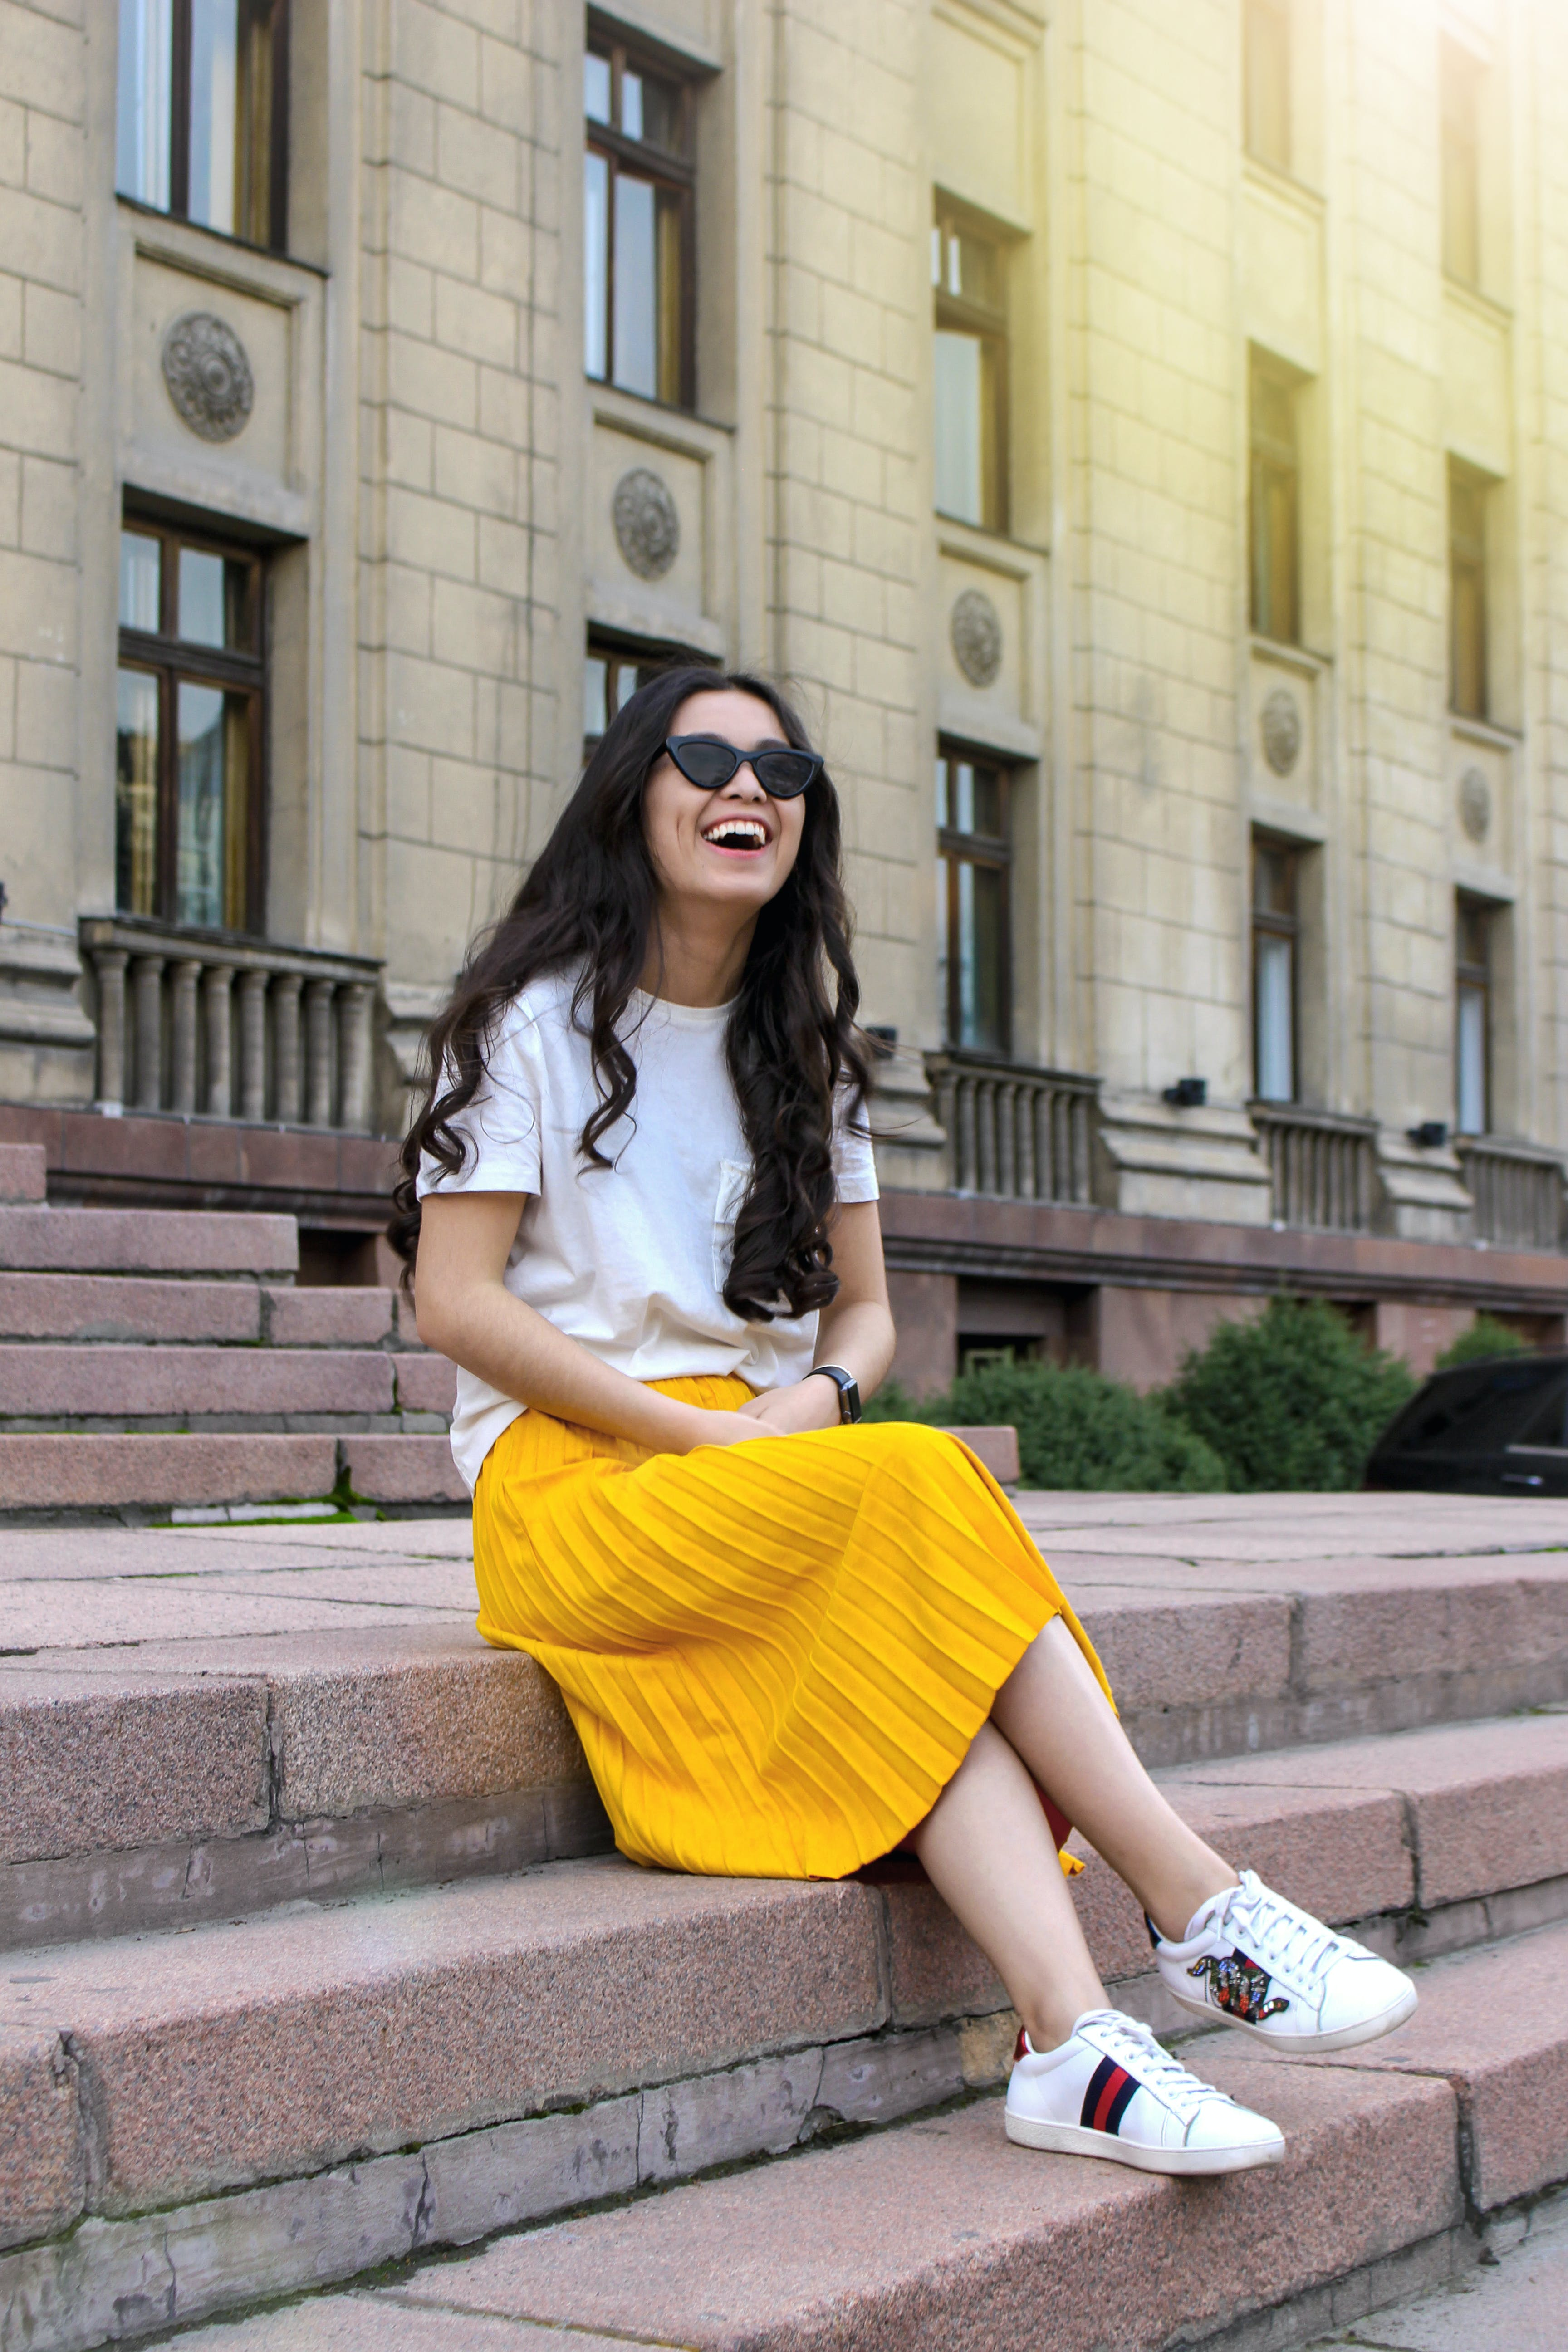 Woman Wearing White Shirt and Yellow Skirt Sitting on Brown Concrete Brick Stairs